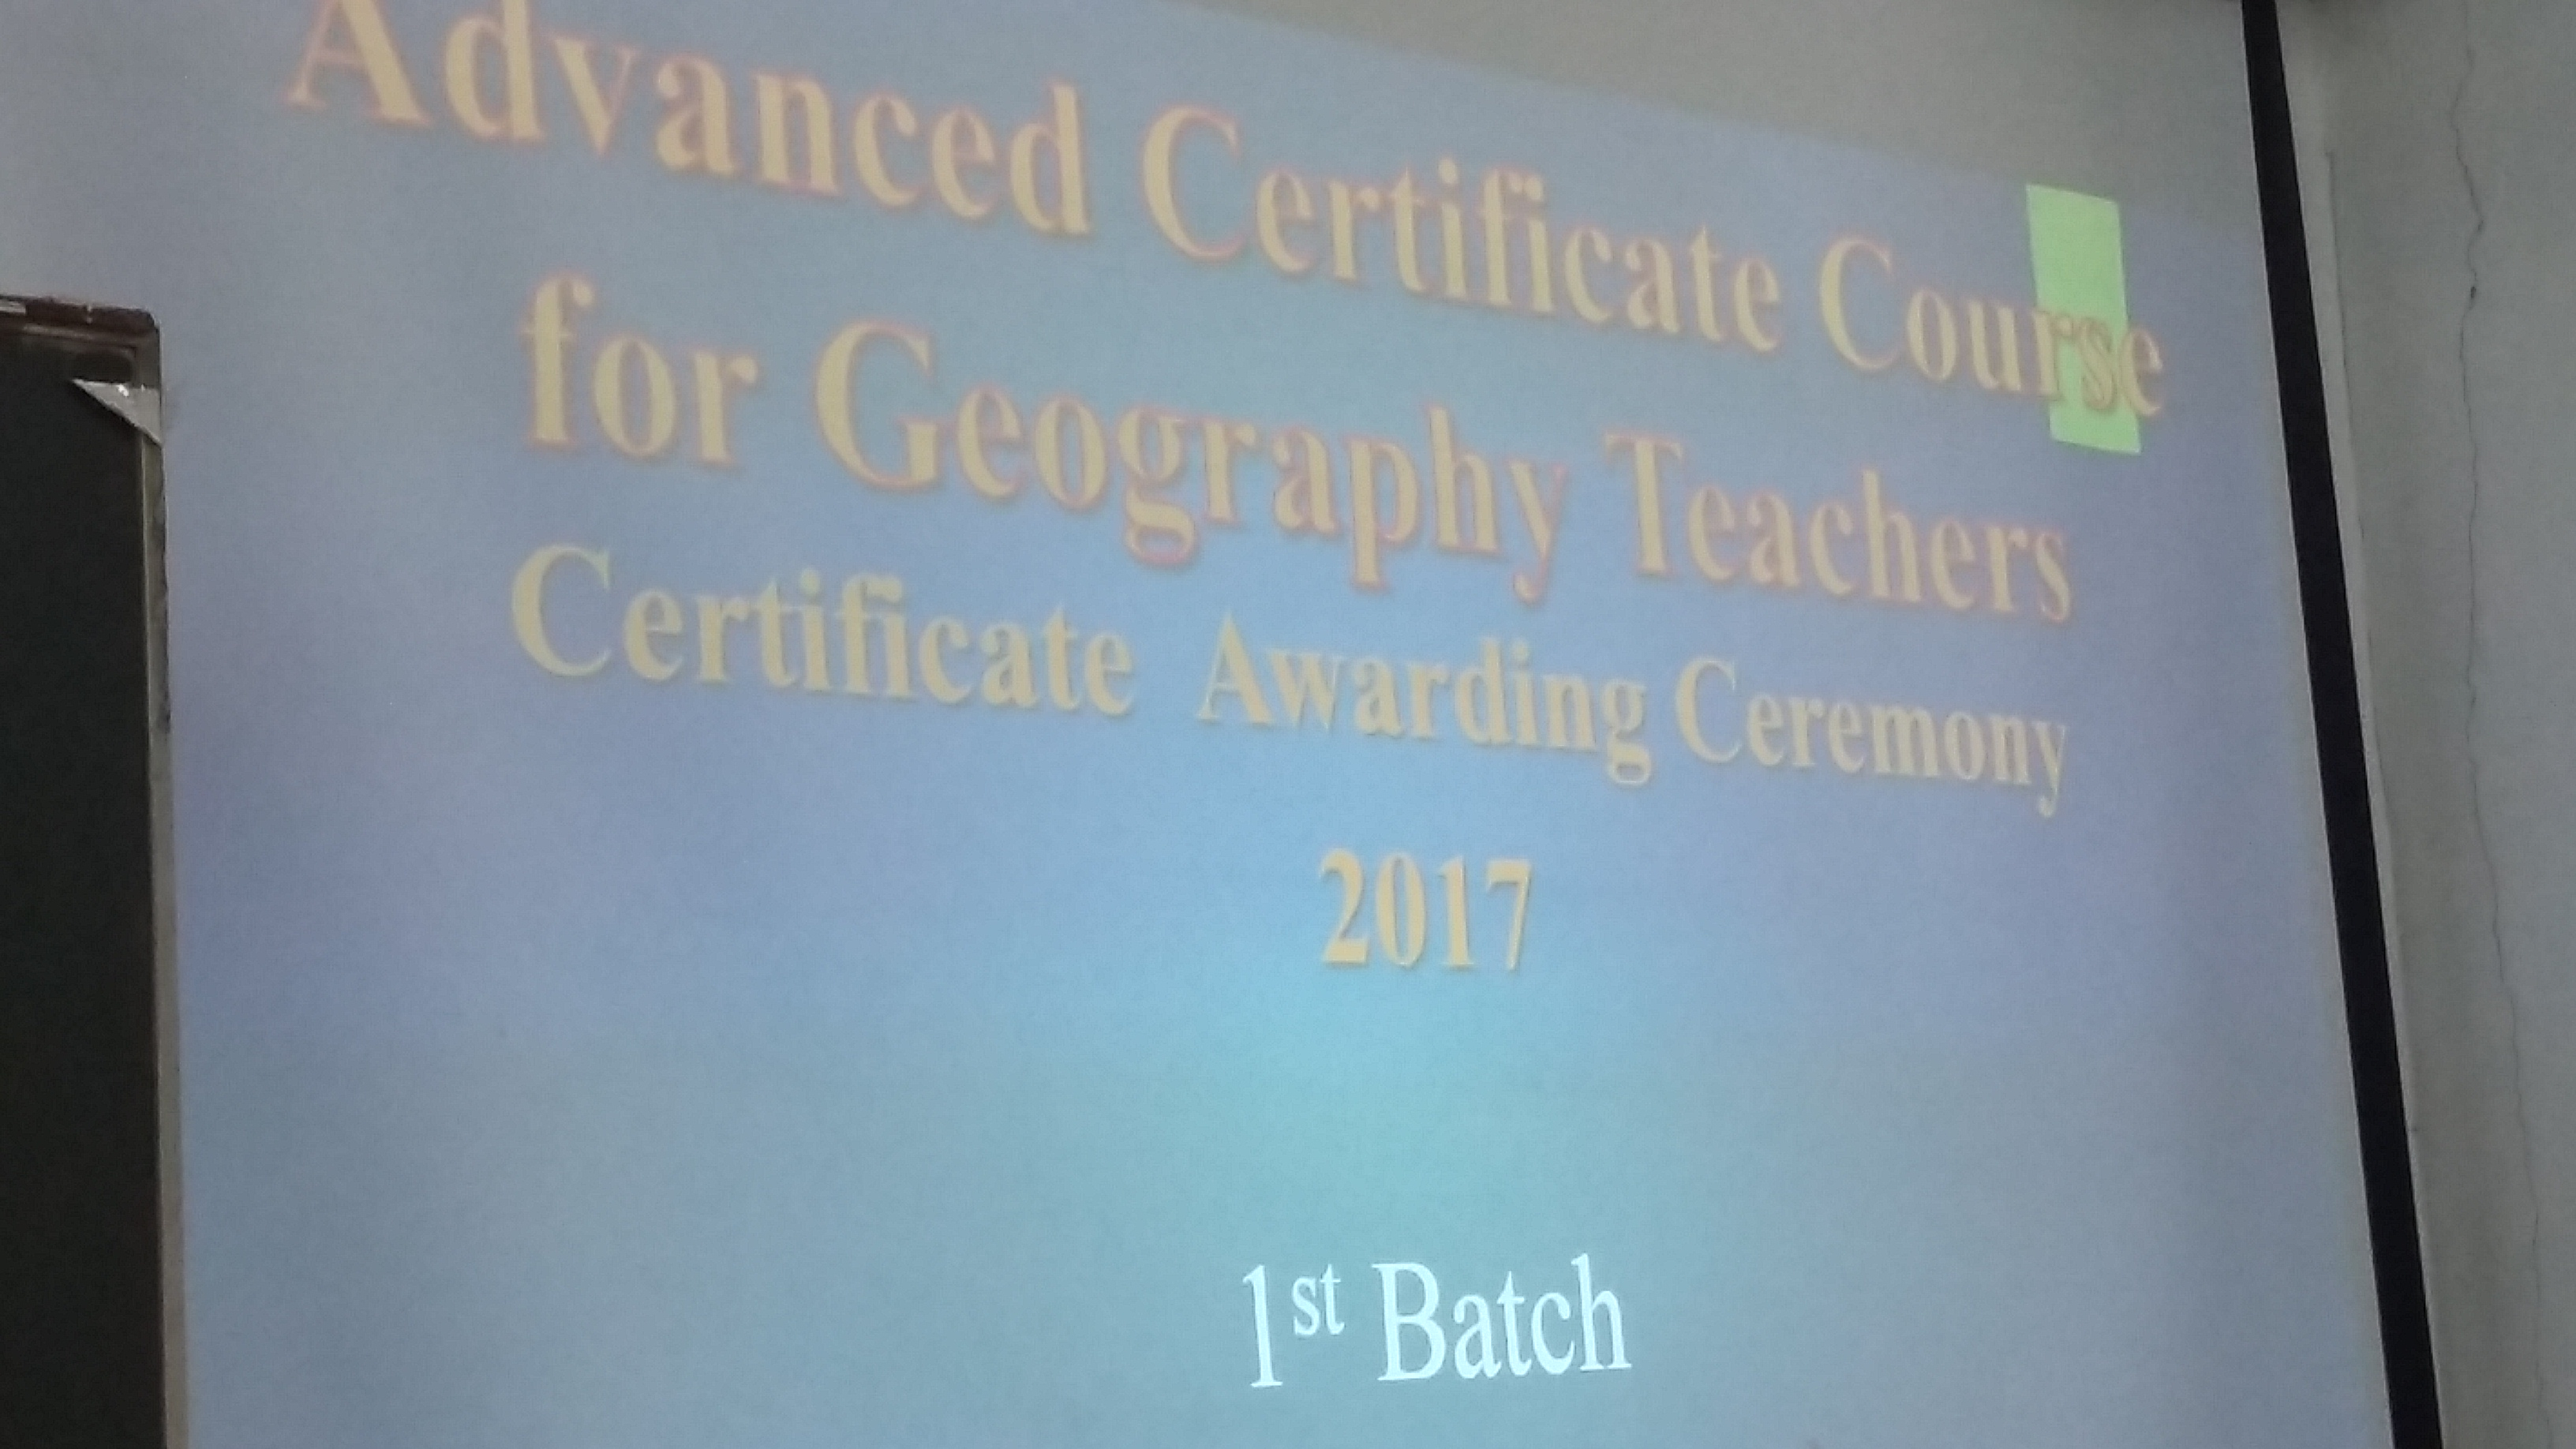 Awarding Ceremony –  Advanced Certificate Course for A/L Geography Teachers – 1st batch